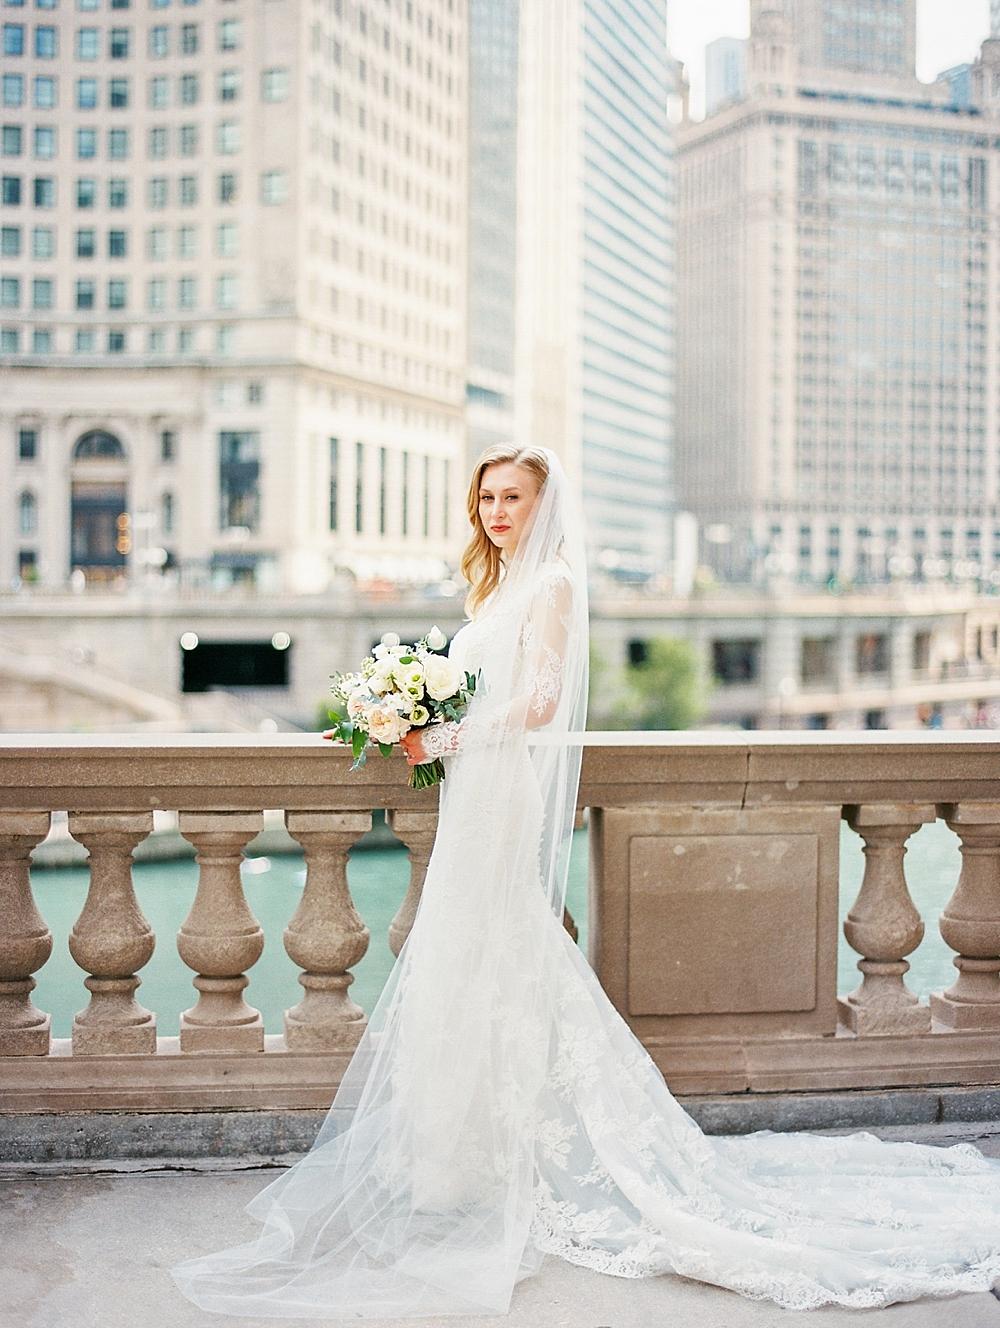 kristin-la-voie-photography-chicago-wedding-photographer-74